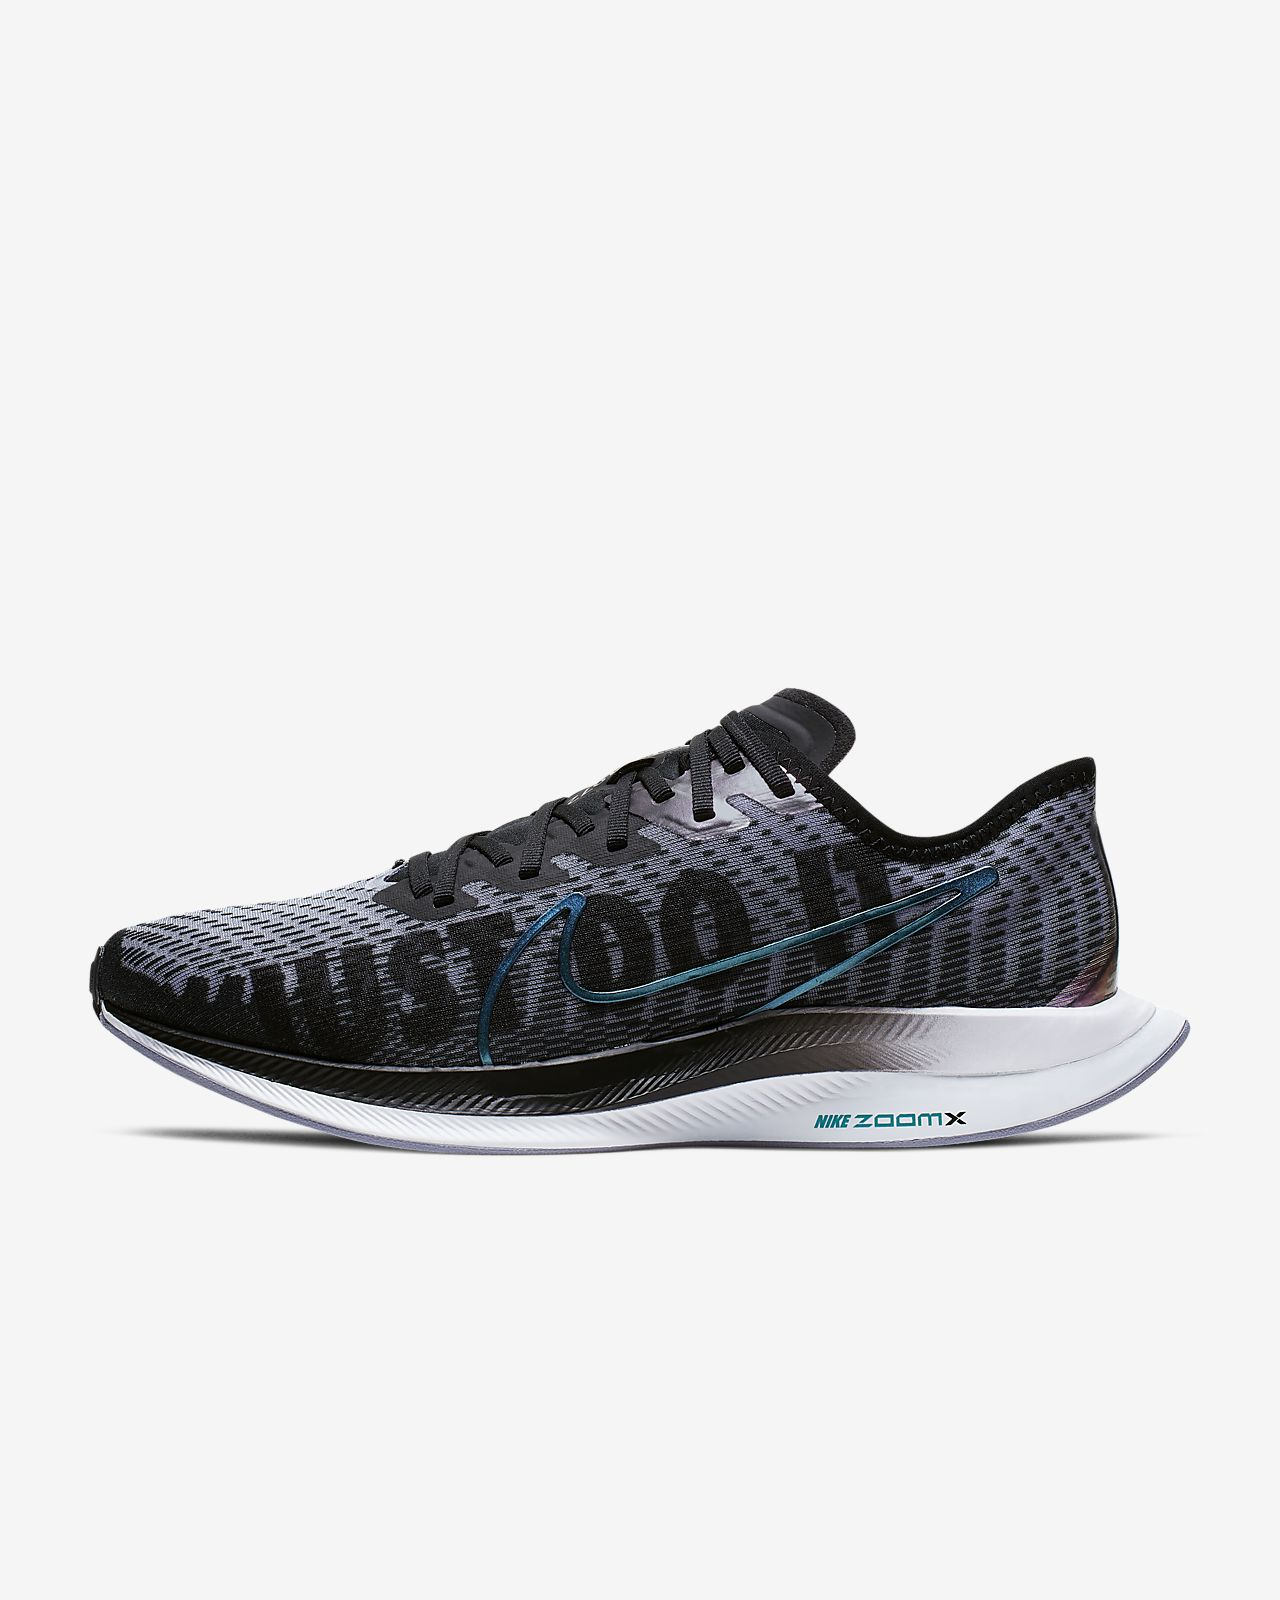 Nike Zoom Pegasus Turbo 2 Rise Women's Running Shoe